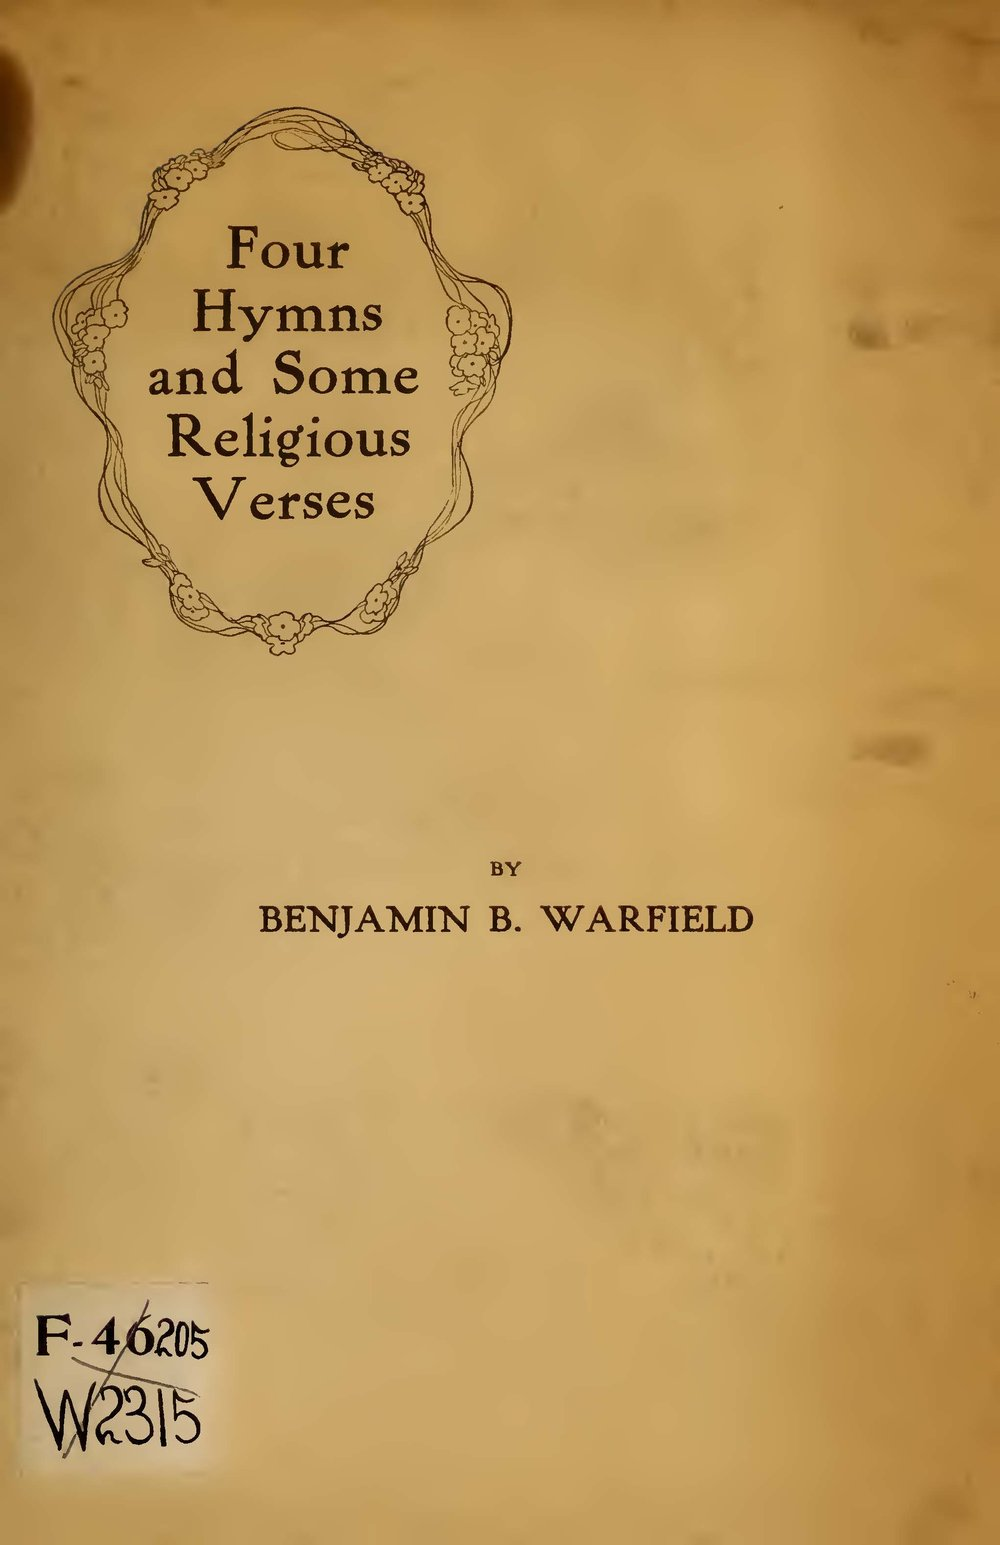 Warfield, Benjamin Breckinridge, Four Hymns and Some Religious Verses Title Page.jpg